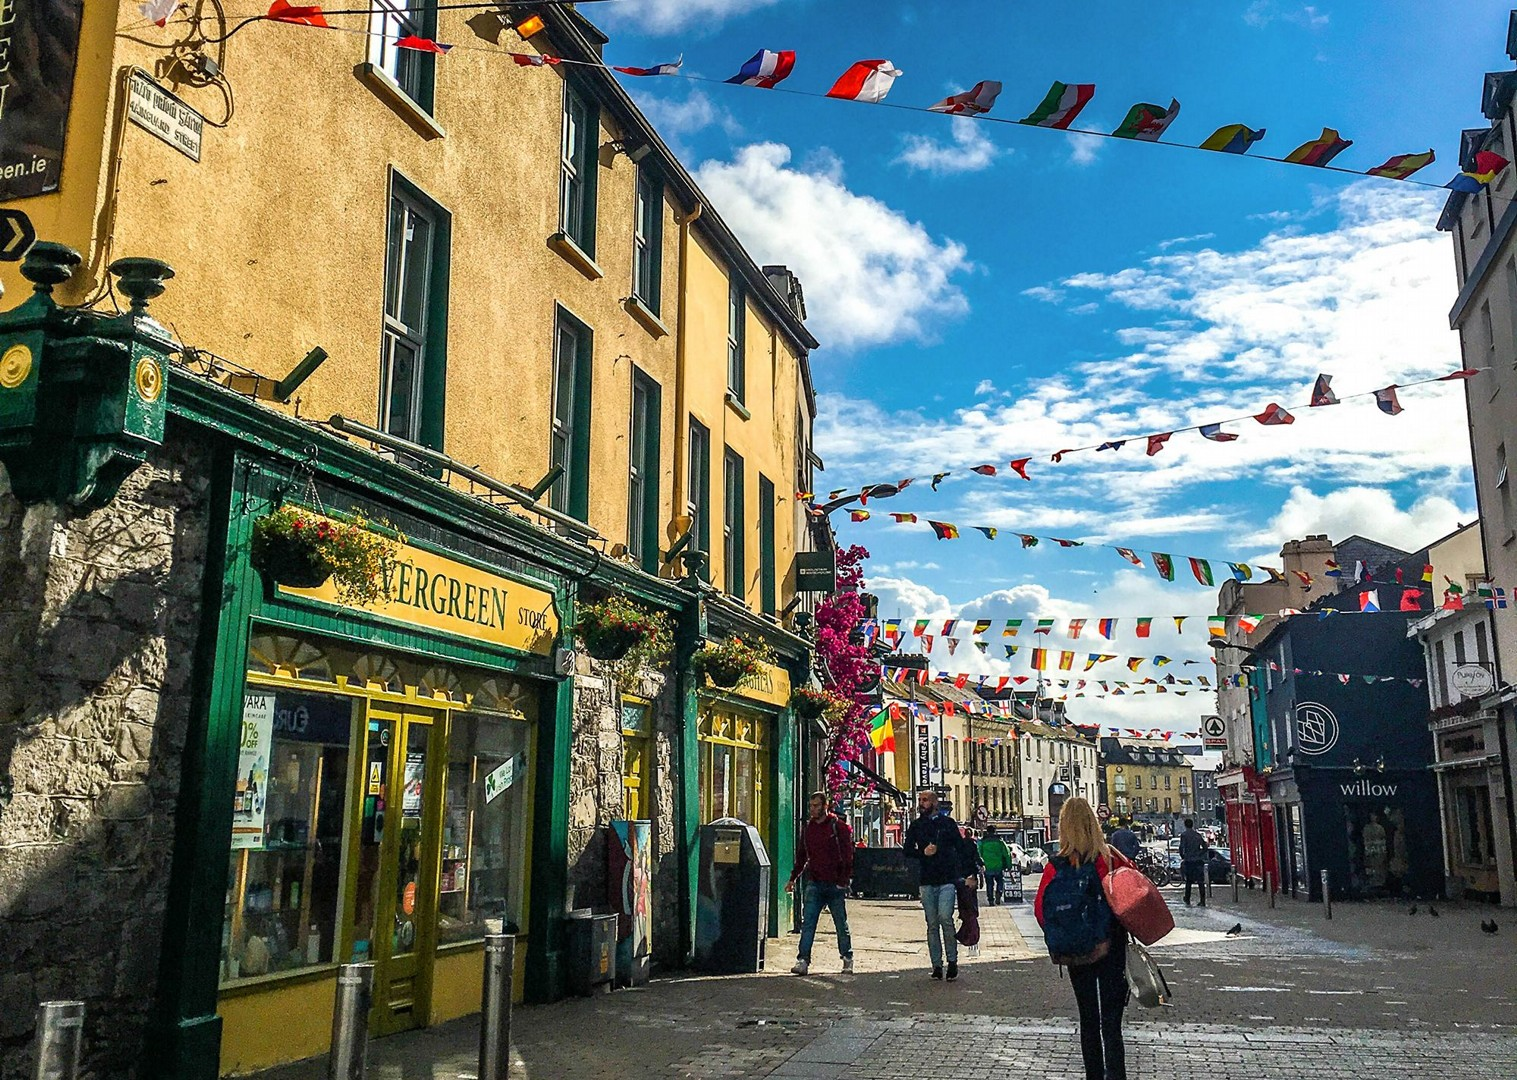 irish-town-leisure-cycling-holiday-in-ireland-self-guided-trip.jpg - NEW! Ireland - Connemara and the Aran Isles - Leisure Cycling